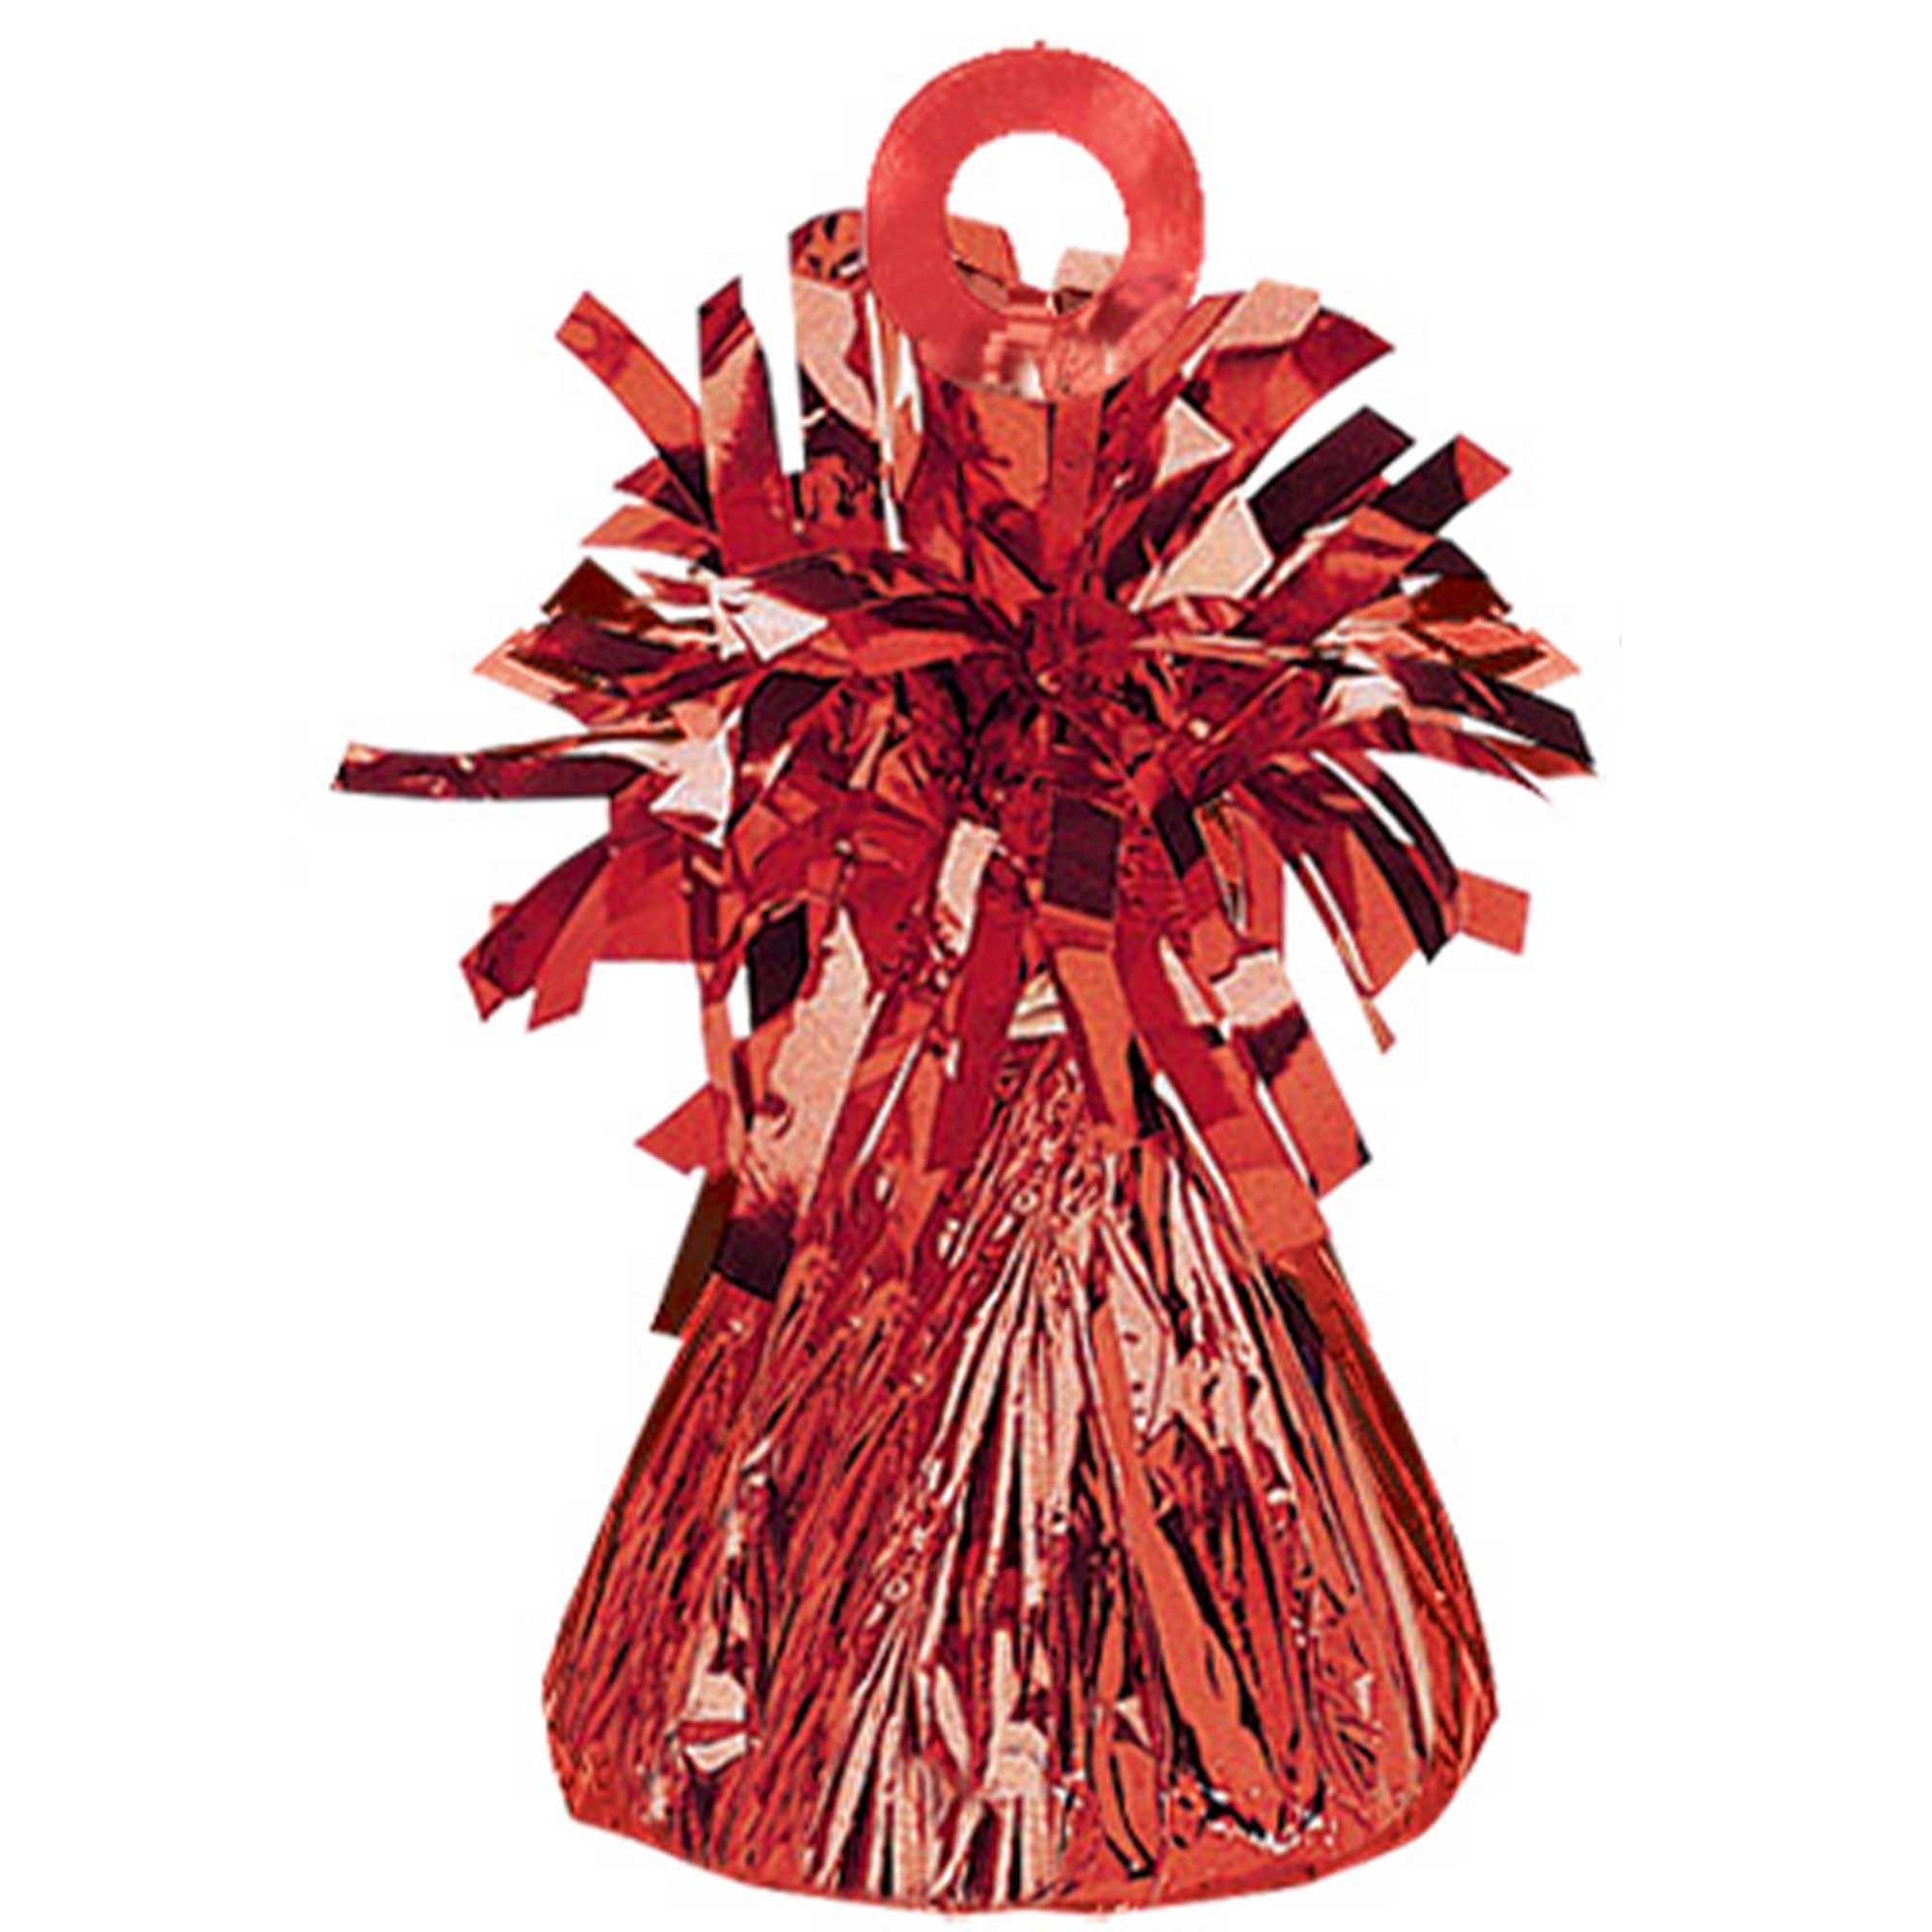 Small Foil Balloon Weight - Red